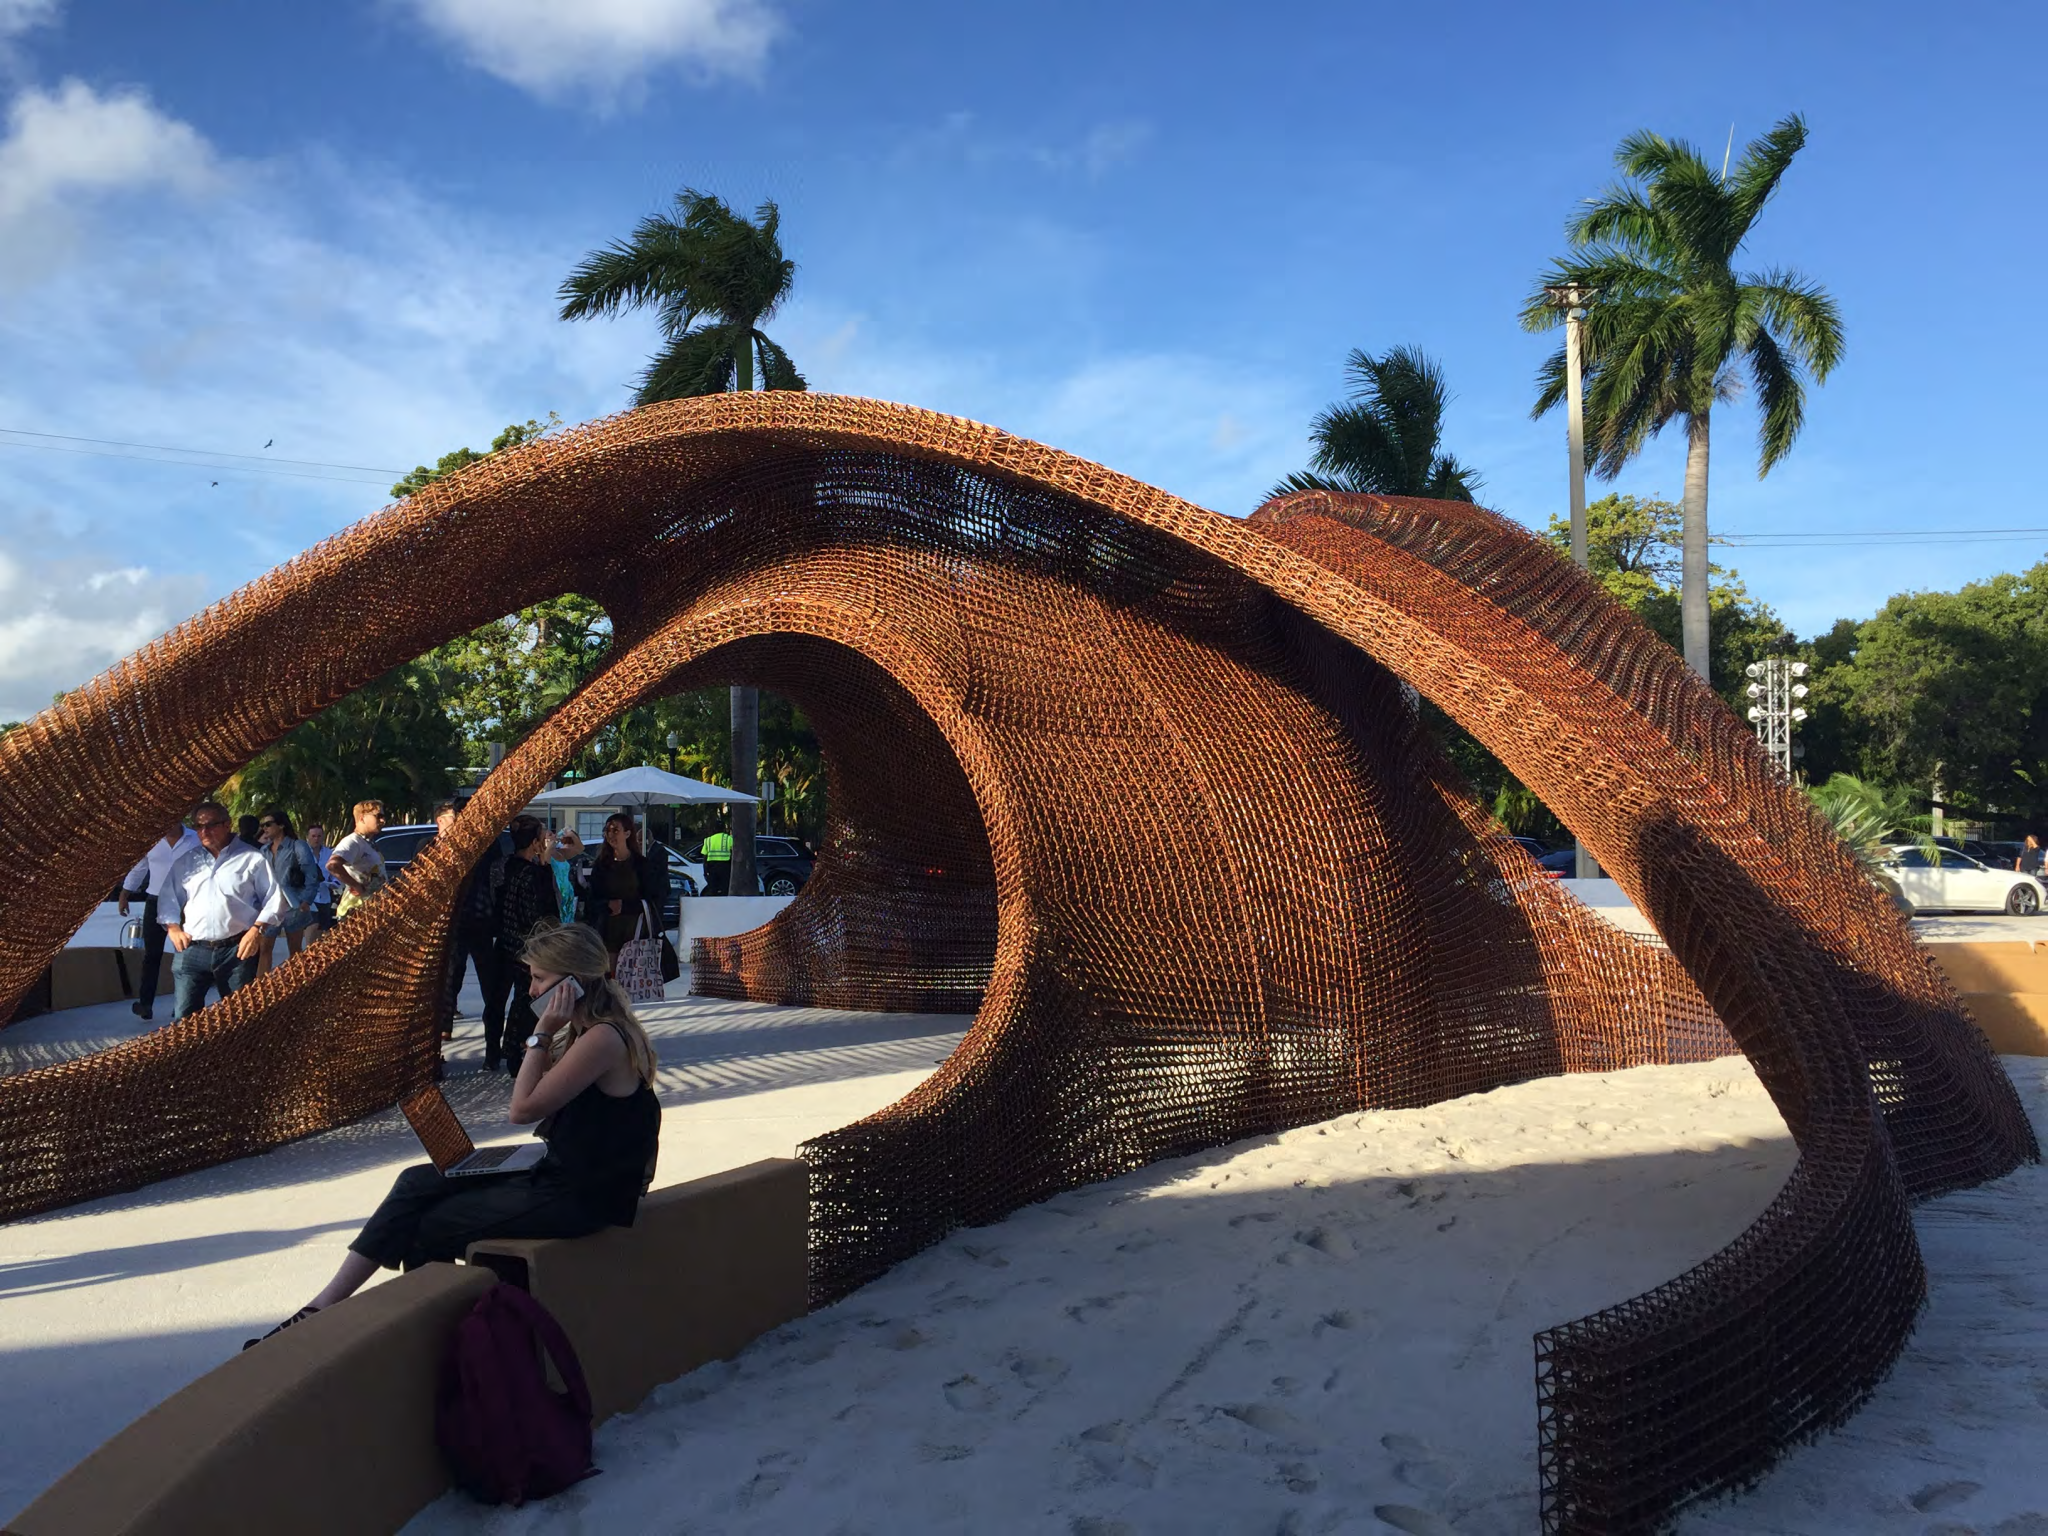 Another angle of the Flotsam and Jetsam design. Photo via Branch Technology.